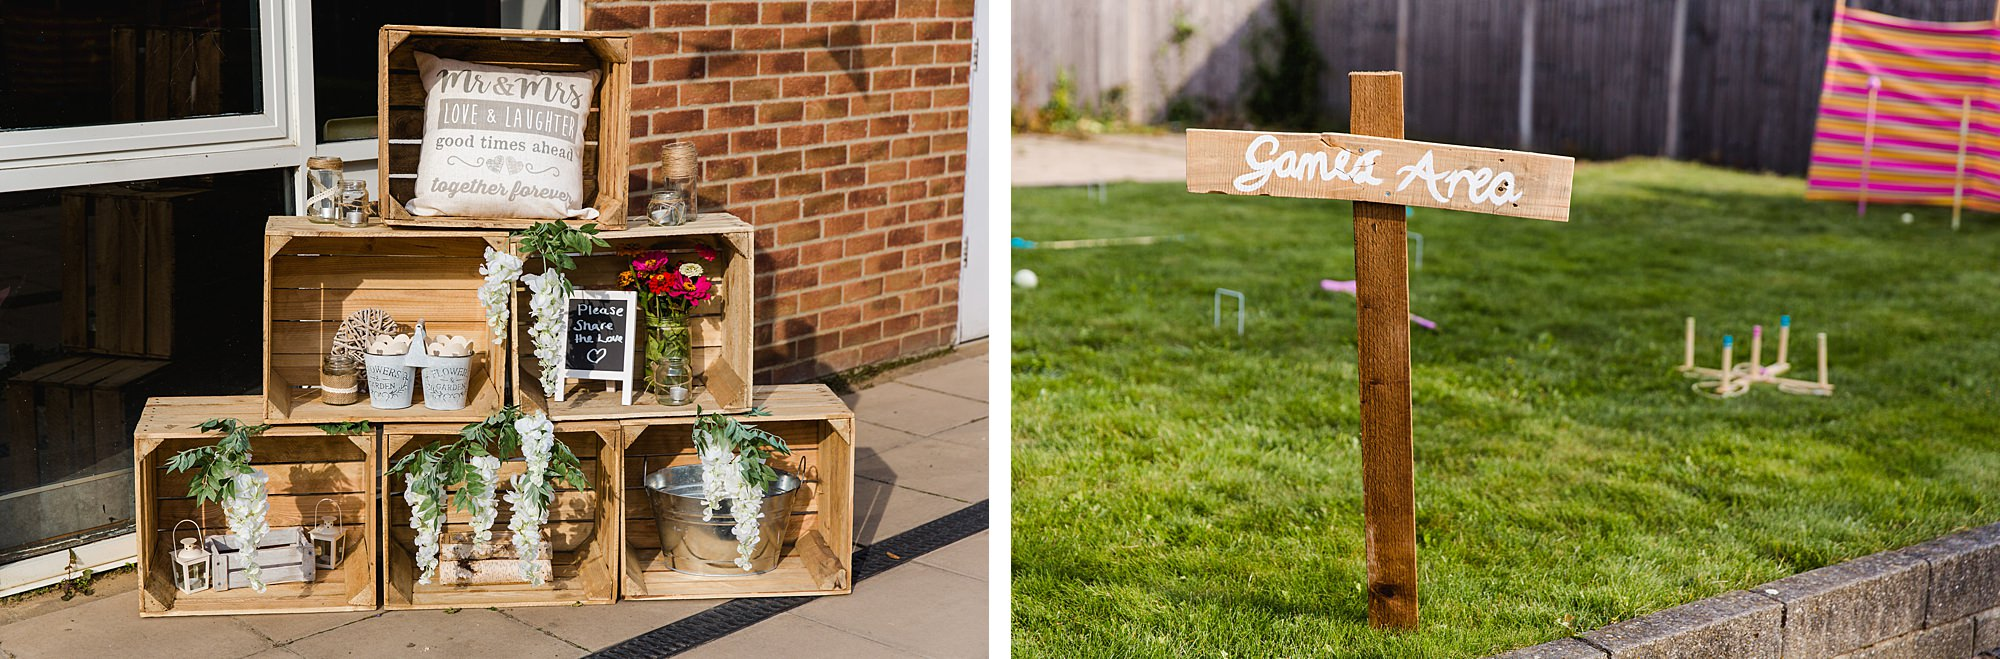 Writtle university college wedding garden games sign and outdoor decorations